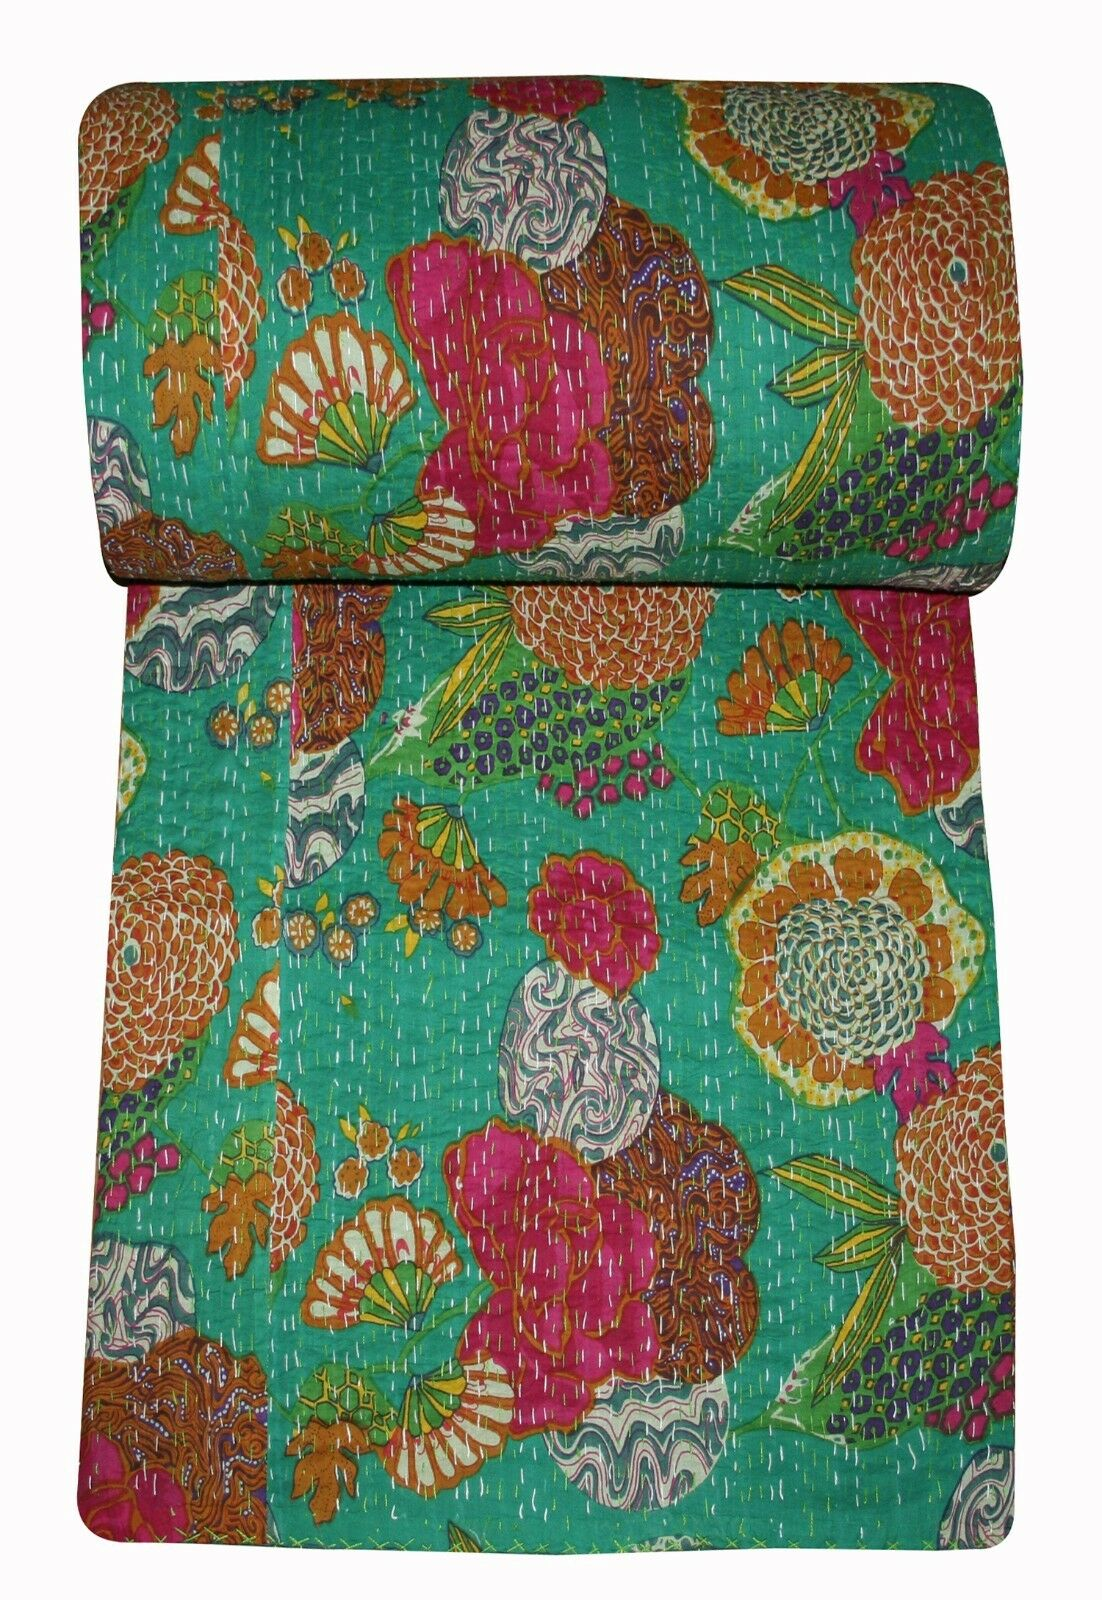 Green Fruit Printed Kantha Handmade Bed cover Kantha Throw Quilt Bedspread Rally